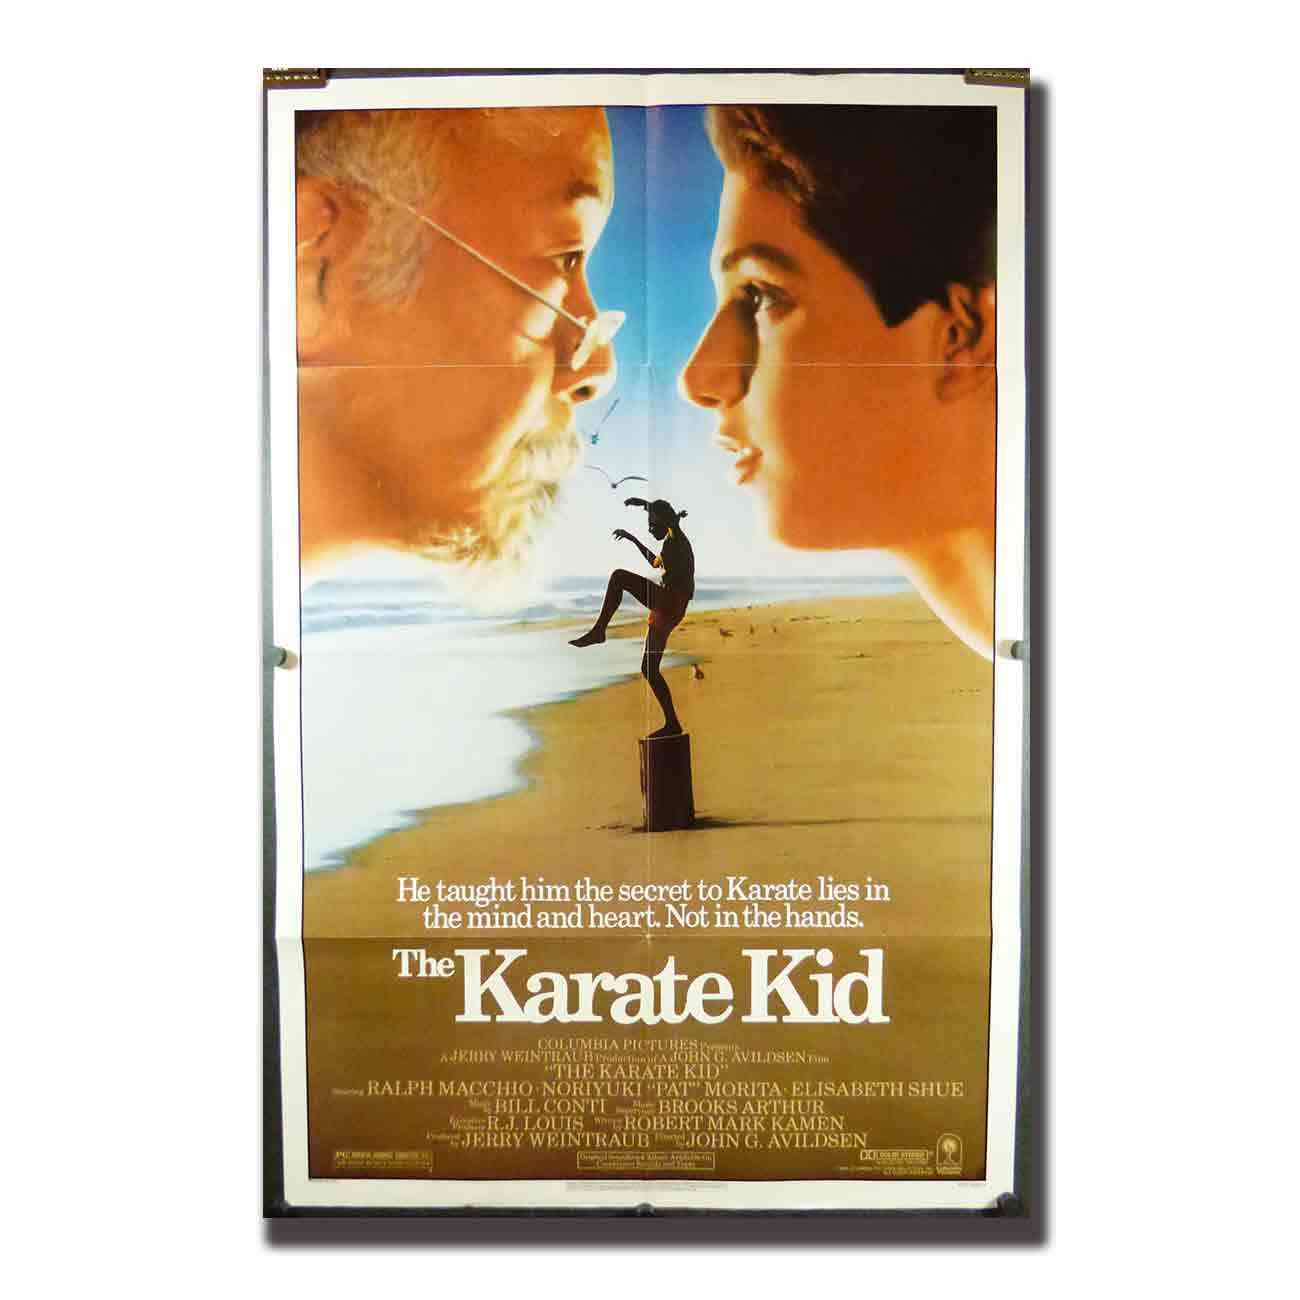 Art Poster Classic Movie The Karate Kid Hot Wall Canvas Print Modern Painting Home Decor14x21 12x18 24x36 27x40 20x30 Painting Calligraphy Aliexpress